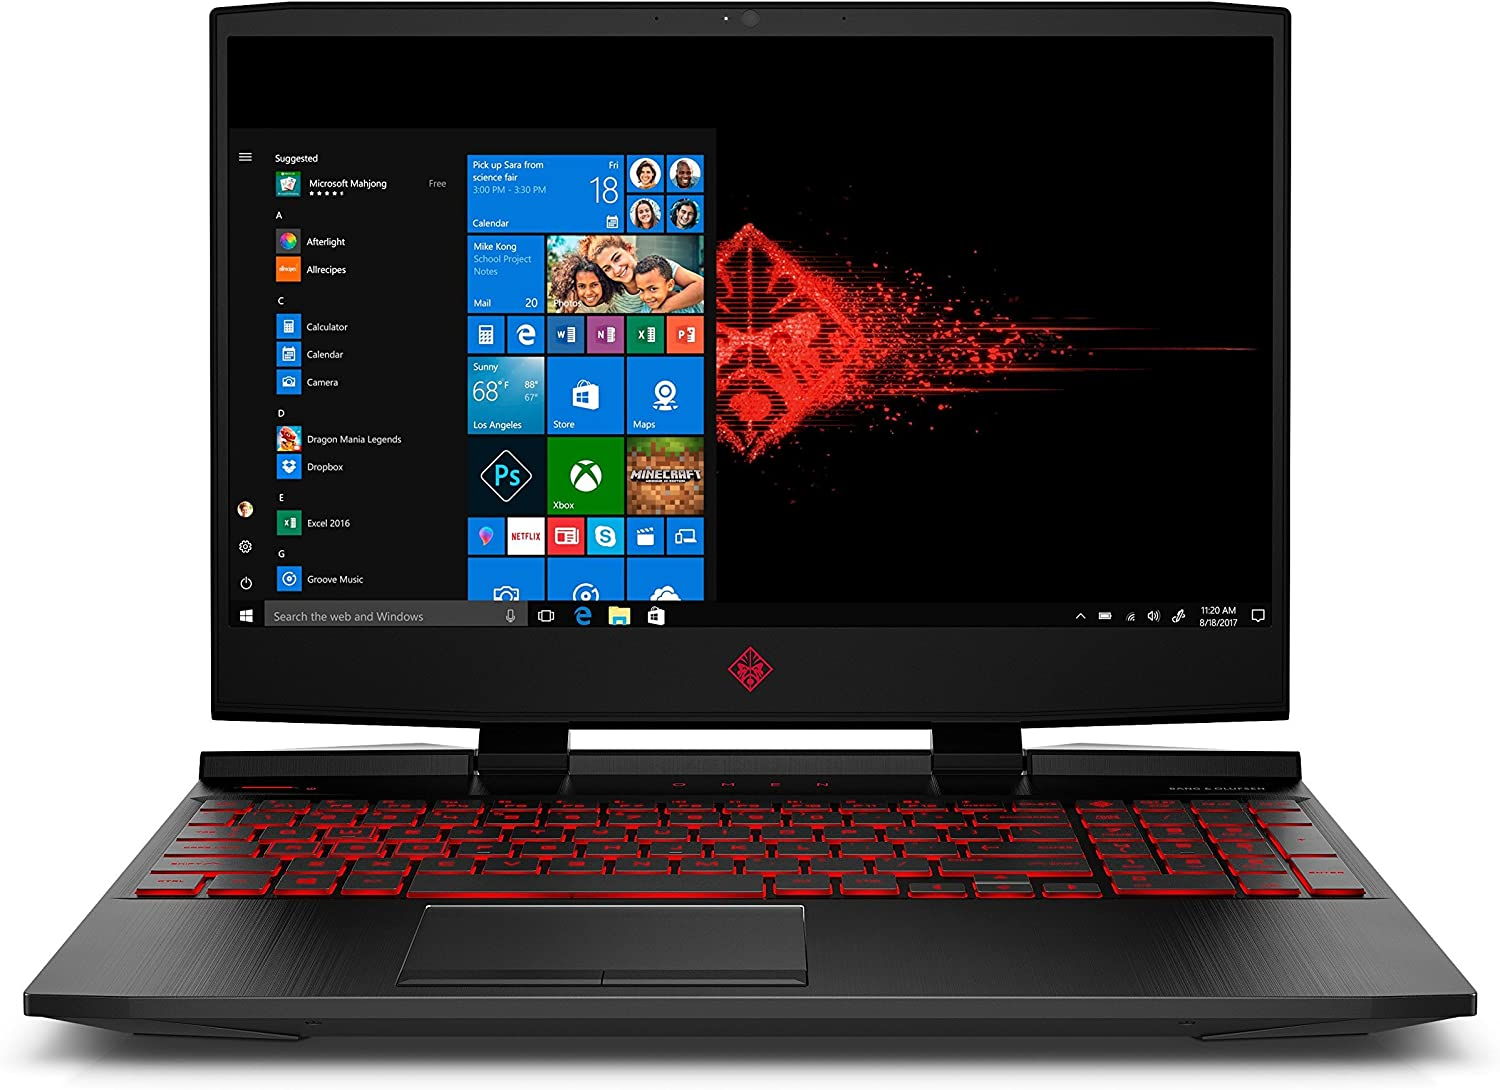 OMEN by HP 15.6in Gaming Laptop, i7-8750H, GeForce GTX 1050TI 4GB, FHD 12GB RAM, 128GB PCIE SSD & 1TB HDD, Windows 10 (15-dc0020nr, Black), Metal Chassis (Renewed)